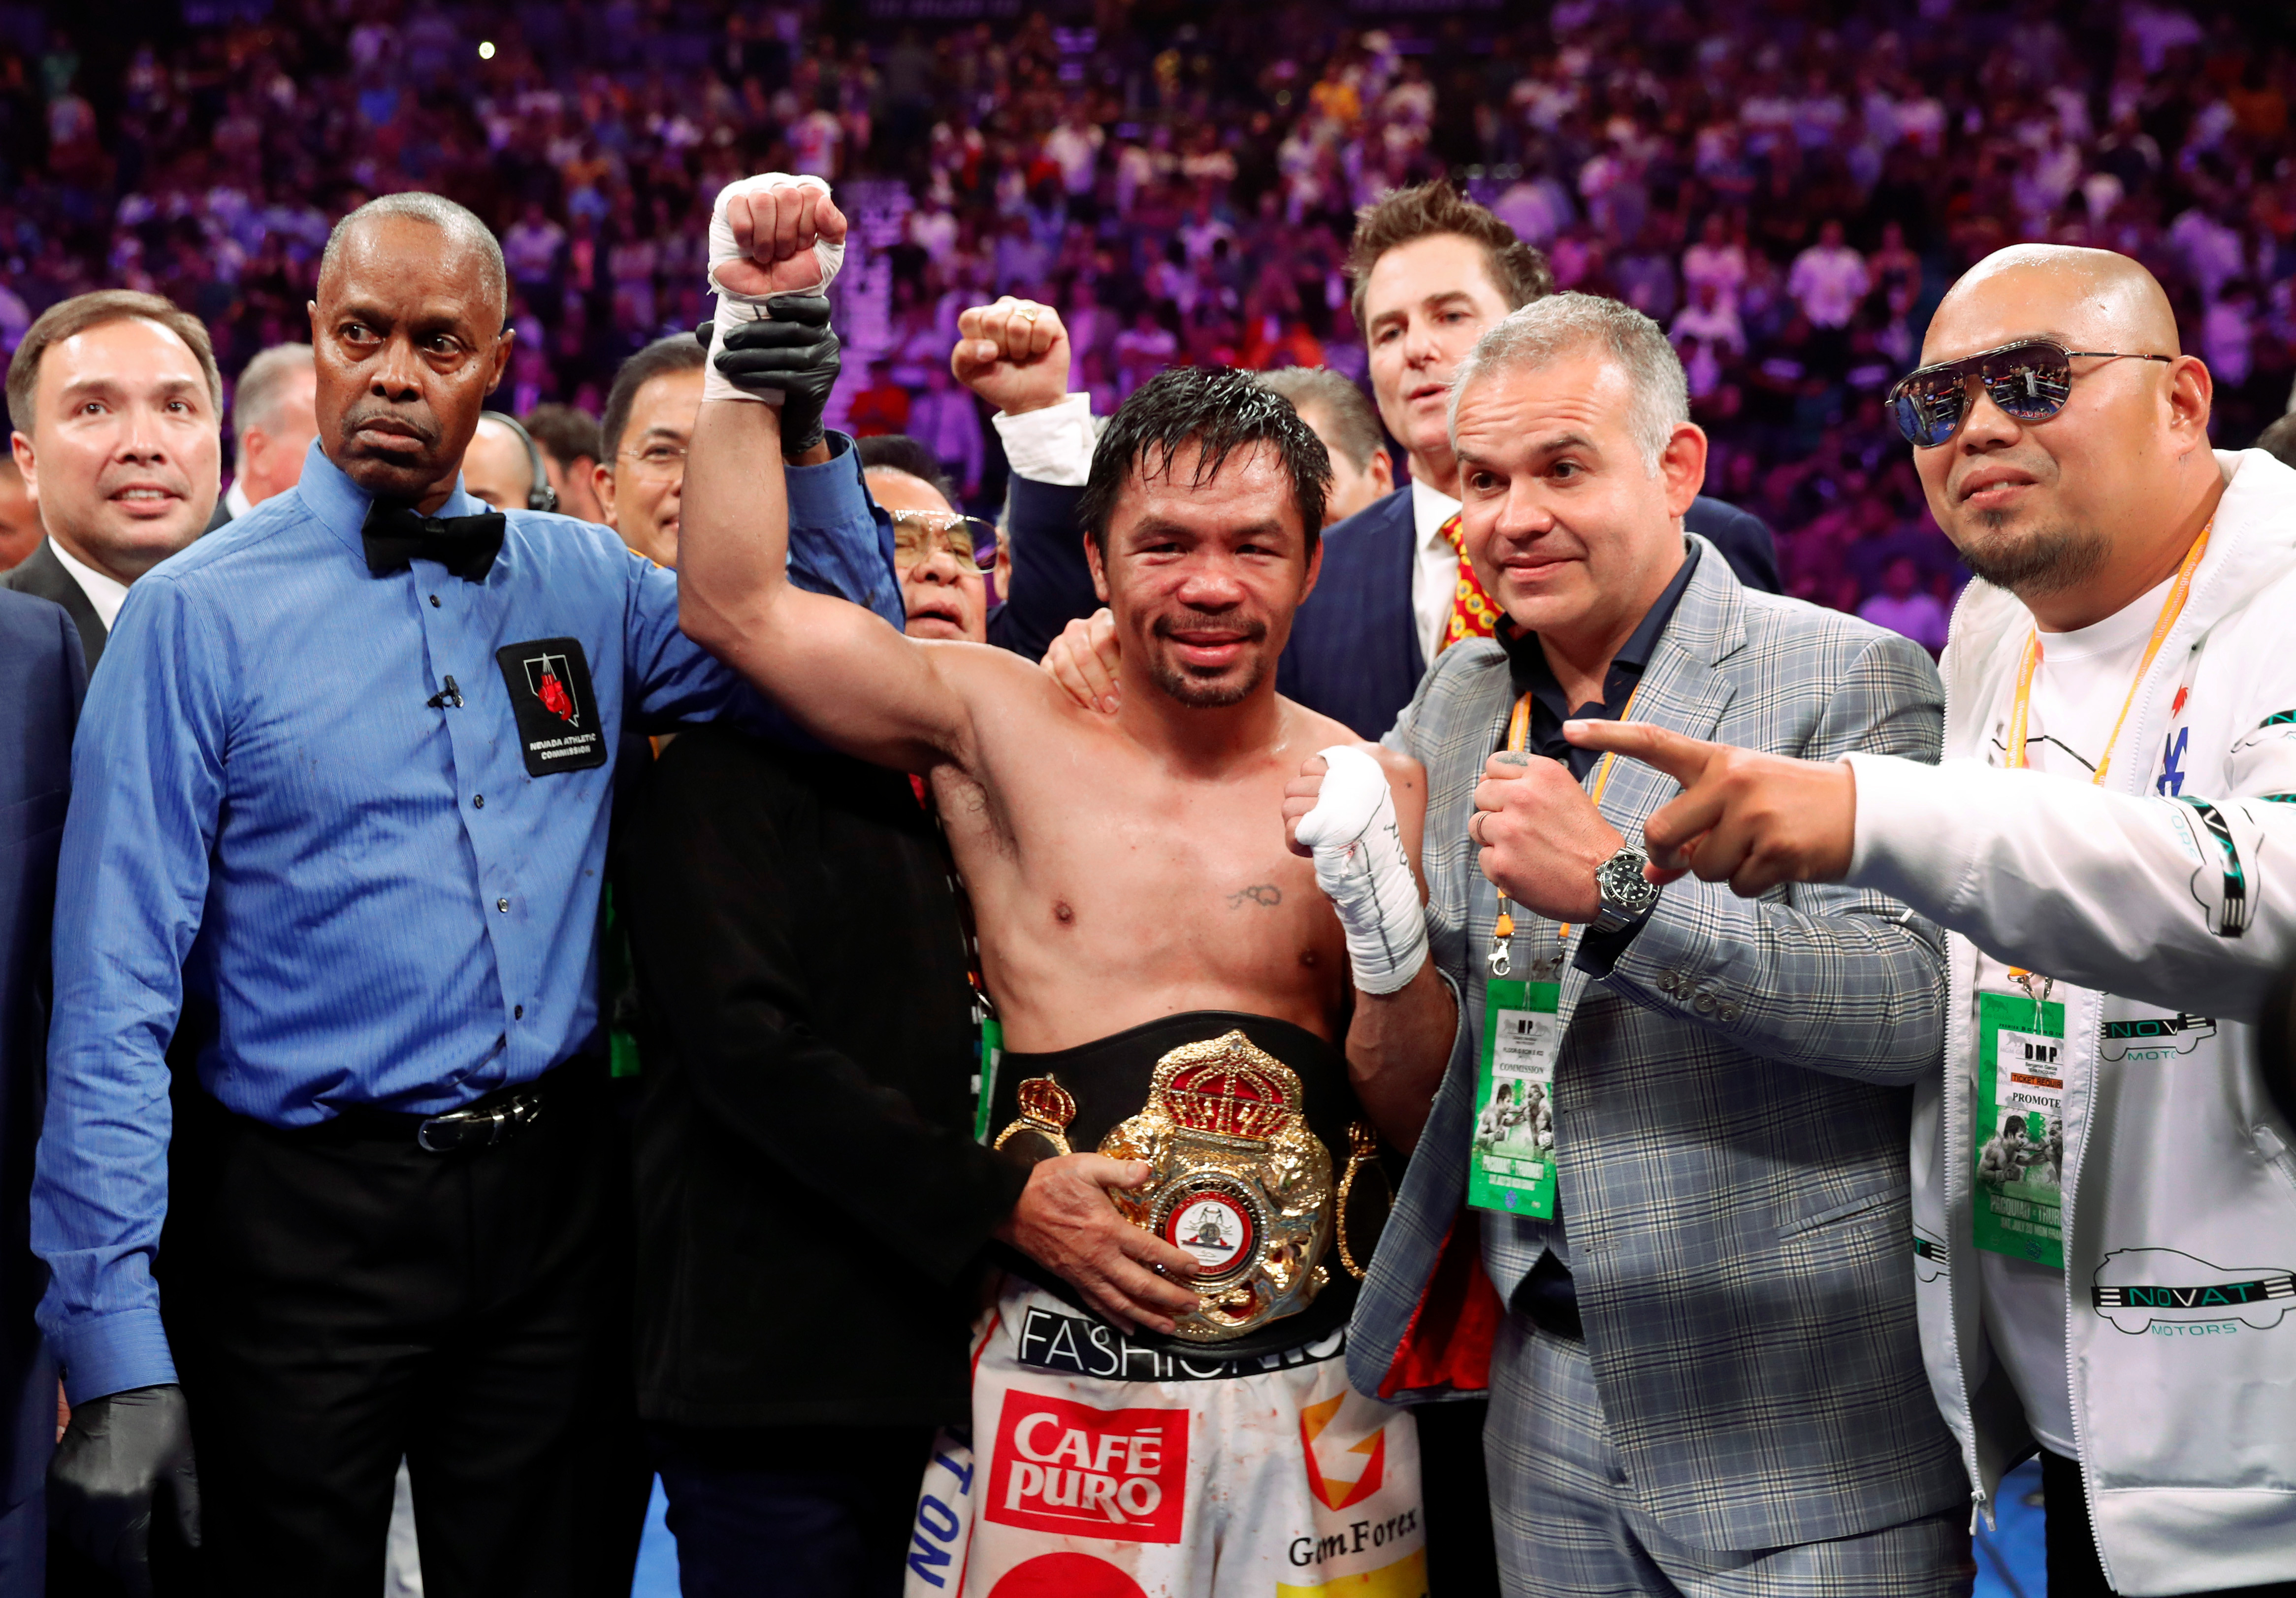 Manny Pacquiao is the WBA welterweight champion